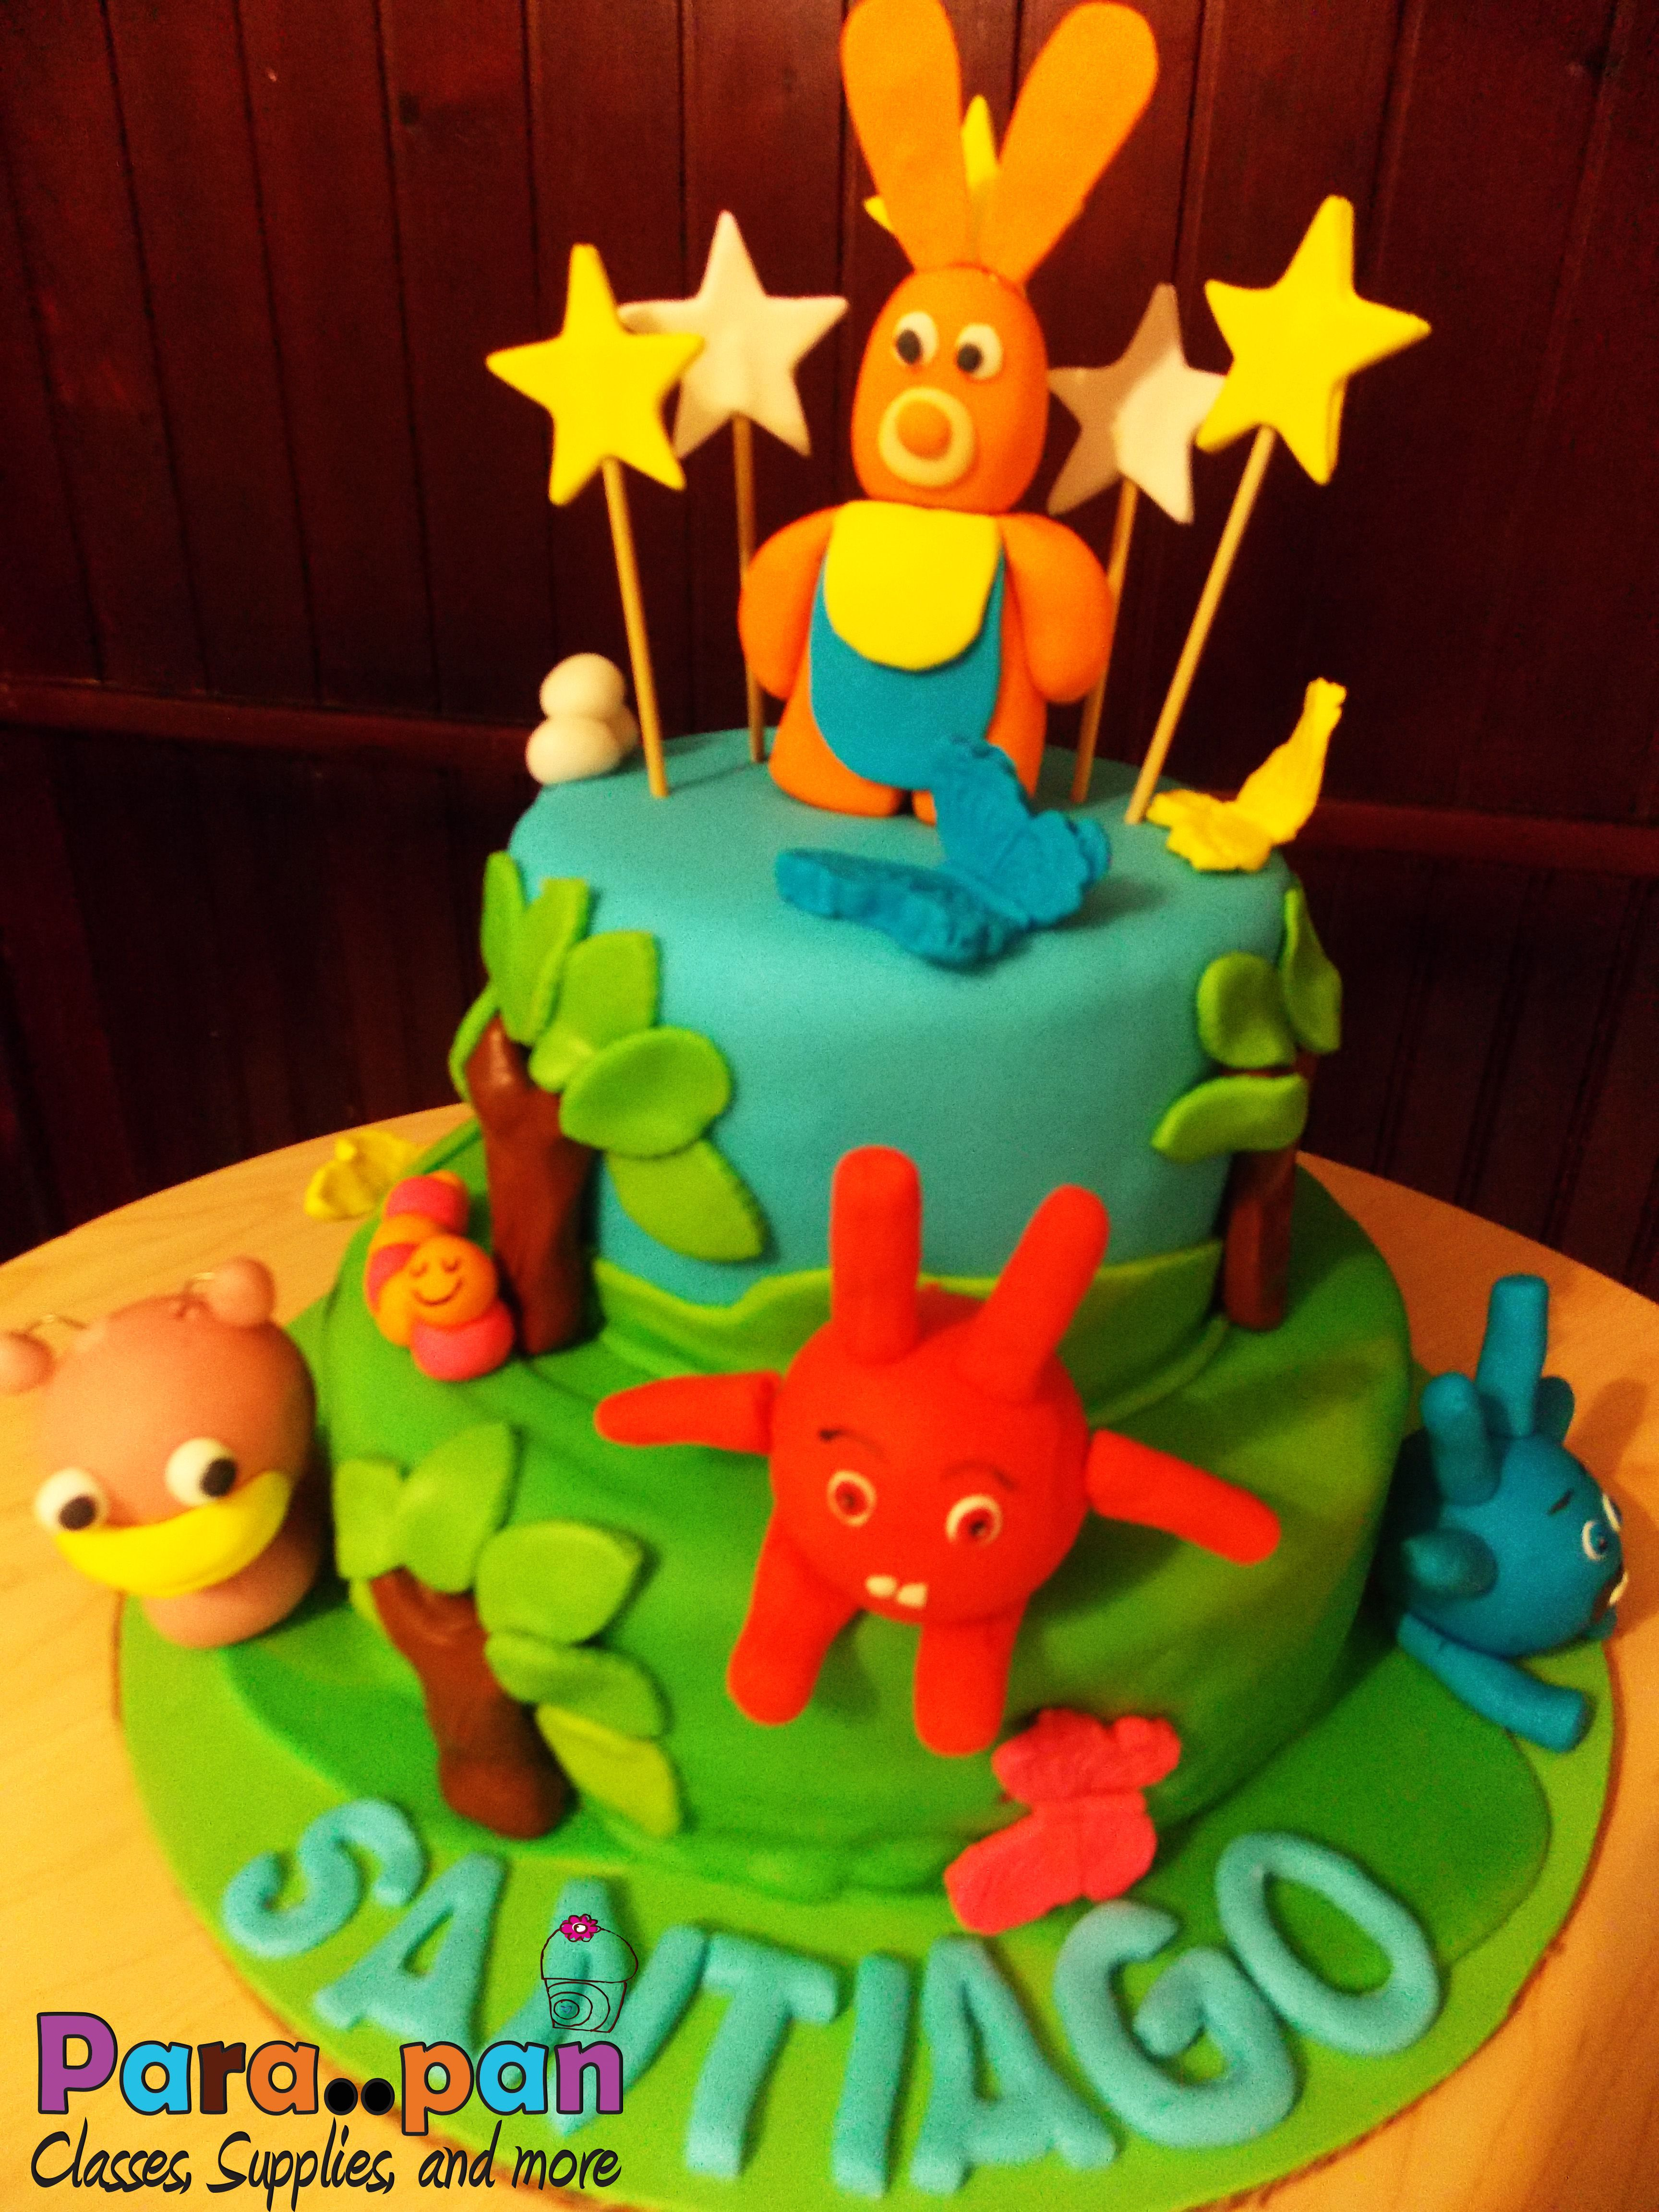 79 best images about my photography on pinterest santiago cook - Pastel Baby Tv Para Santiago